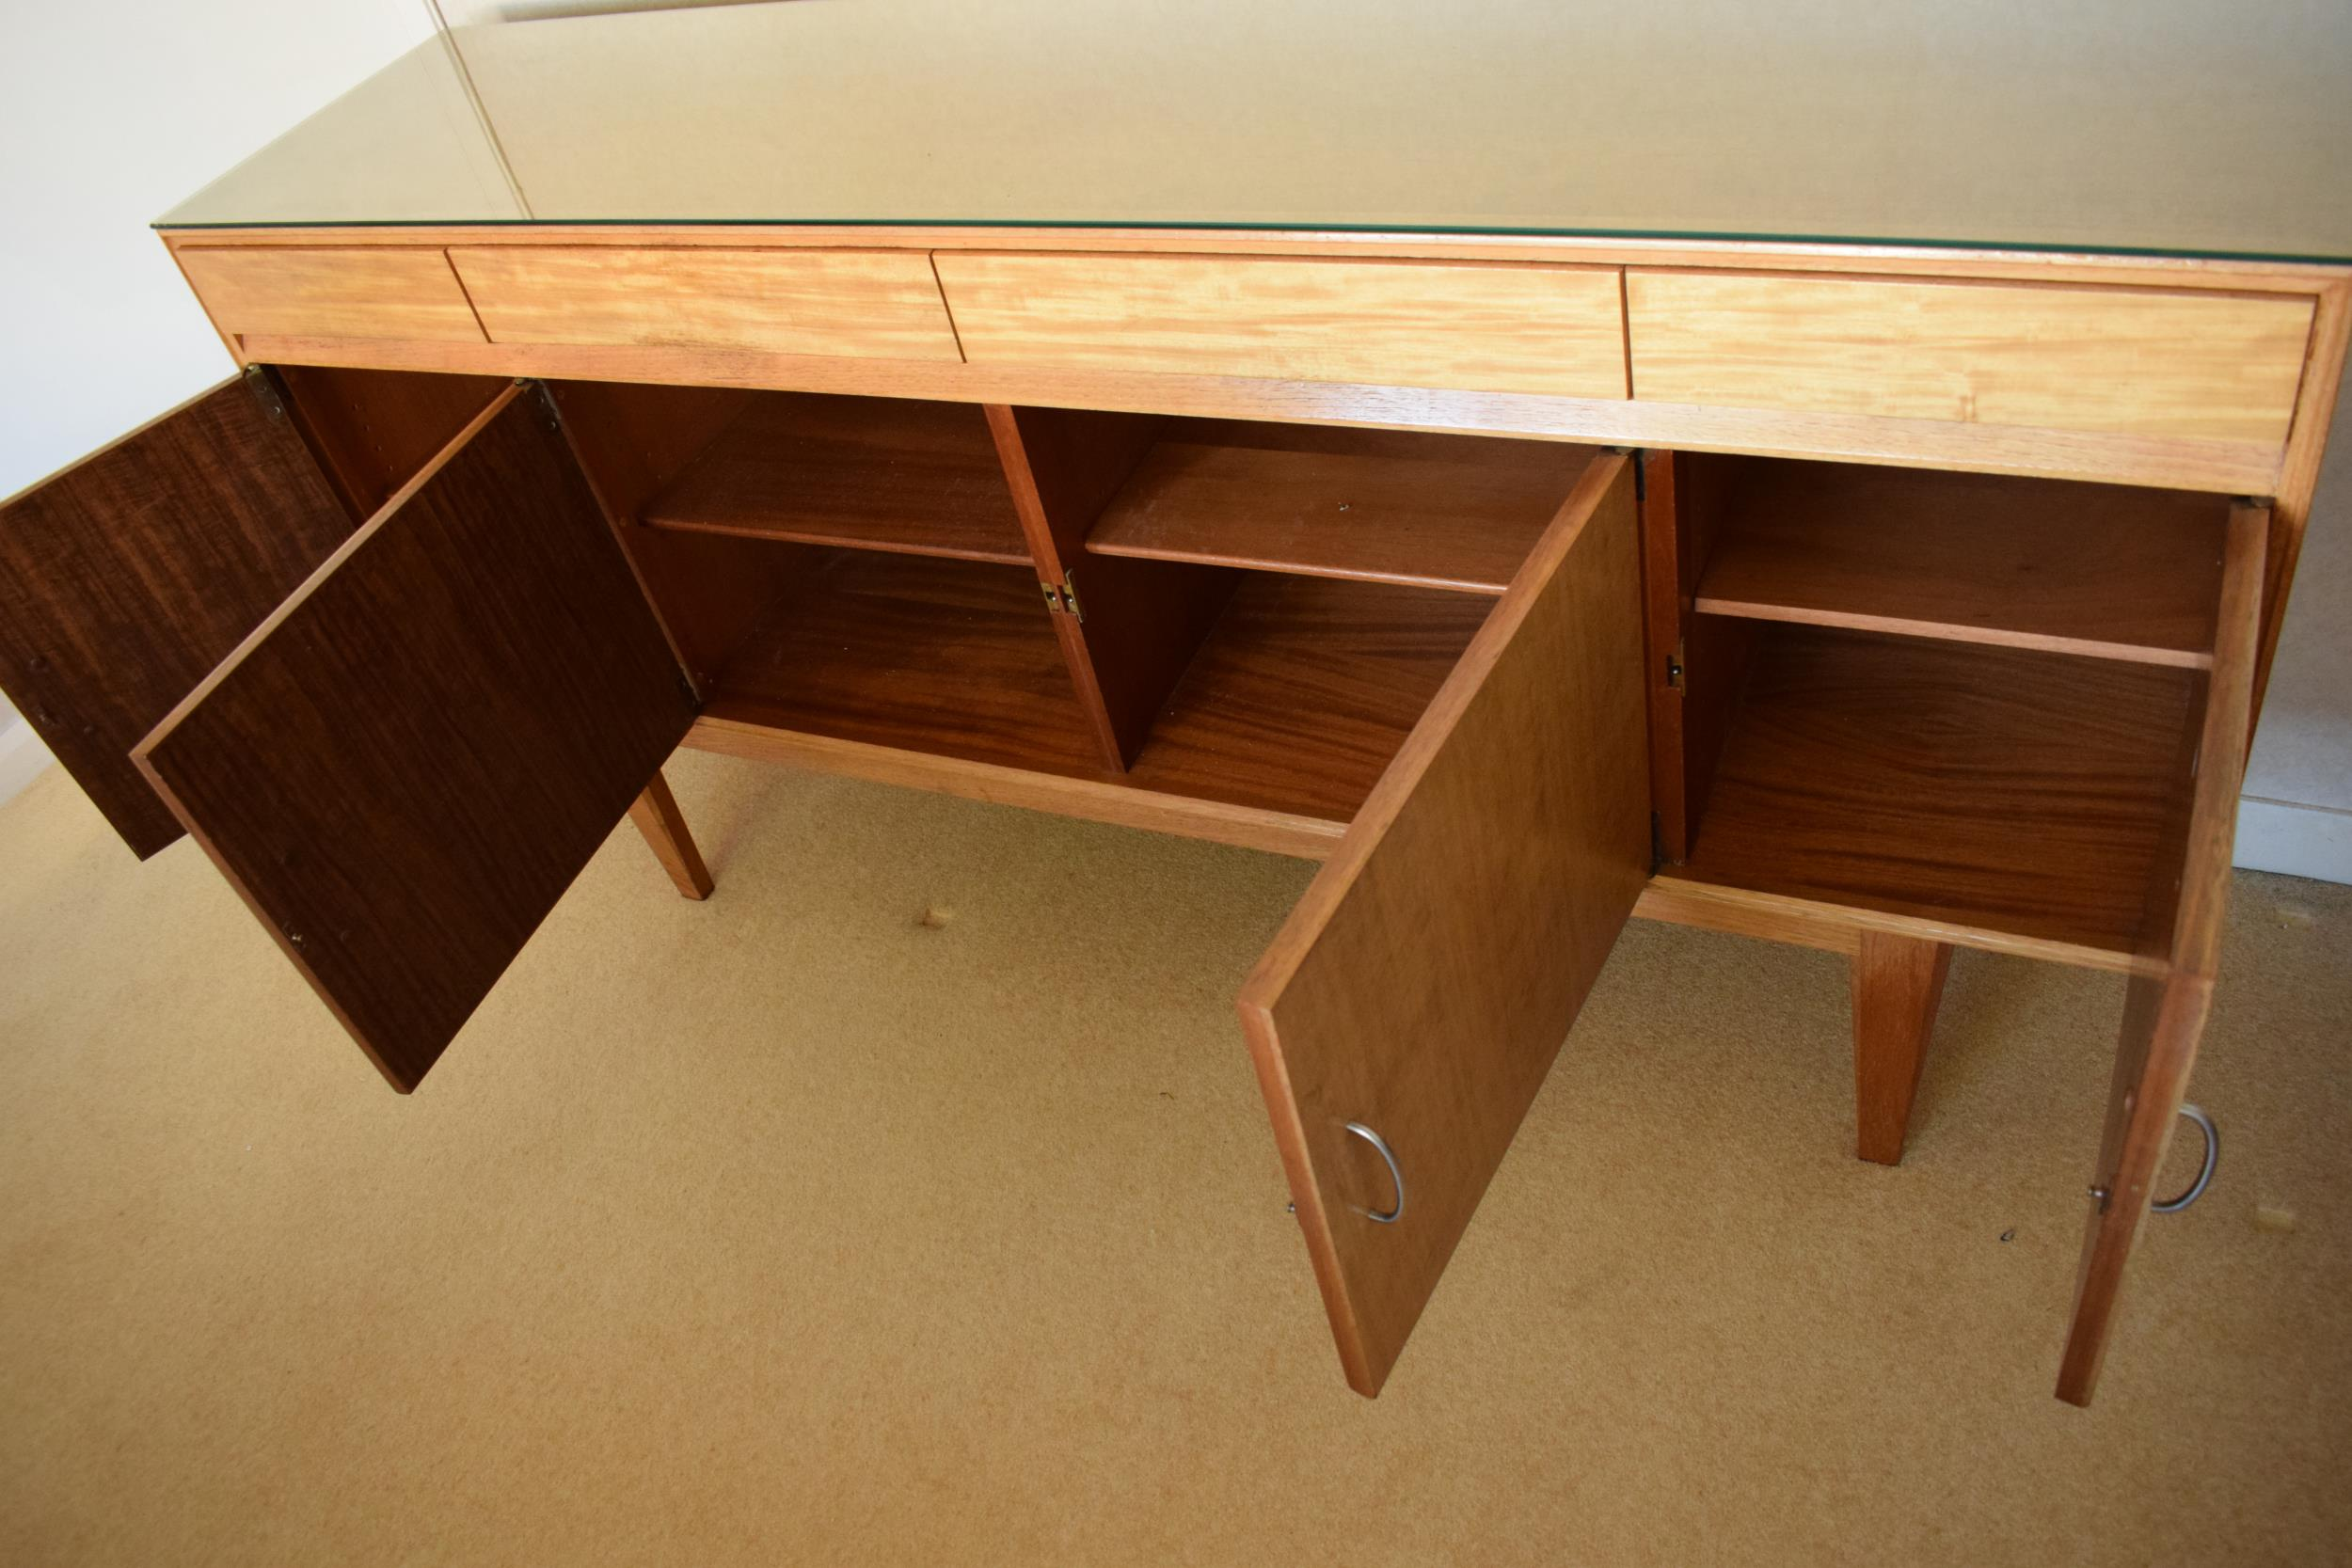 Gordon Rusell Limited four-door mid-century / retro sideboard on tapered legs with 4 drawers too. - Image 3 of 8